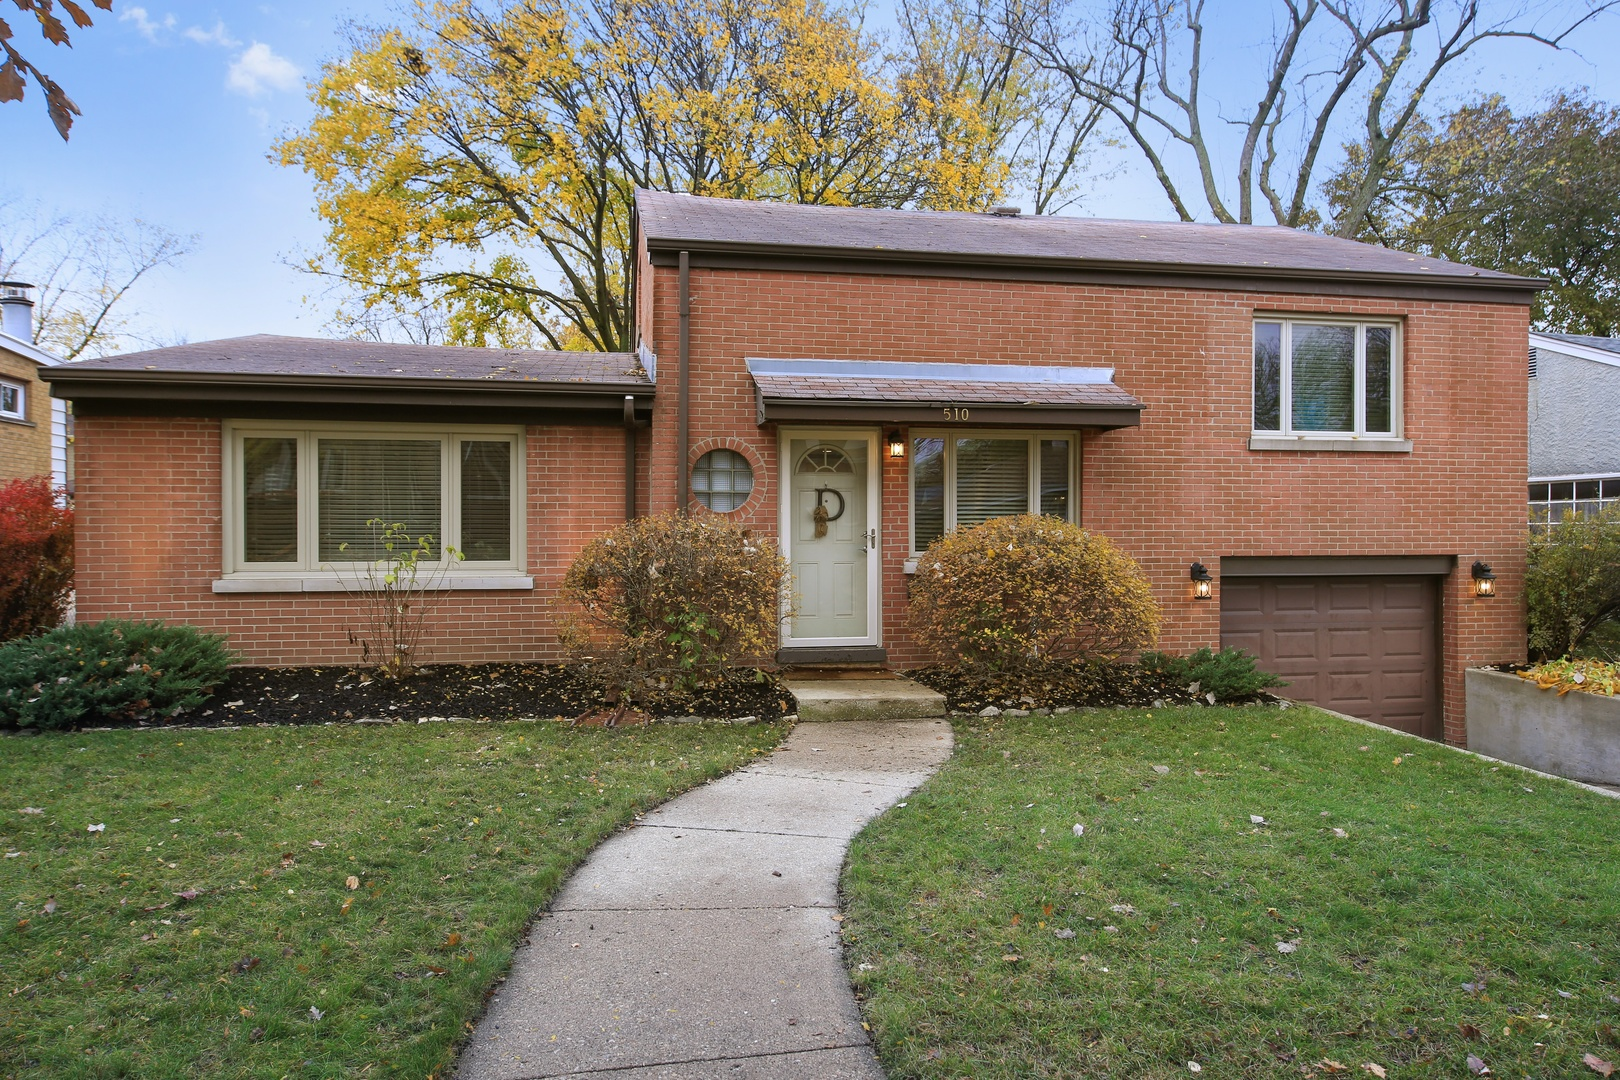 Property for sale at 510 Kemman Avenue, La Grange Park,  Il 60526